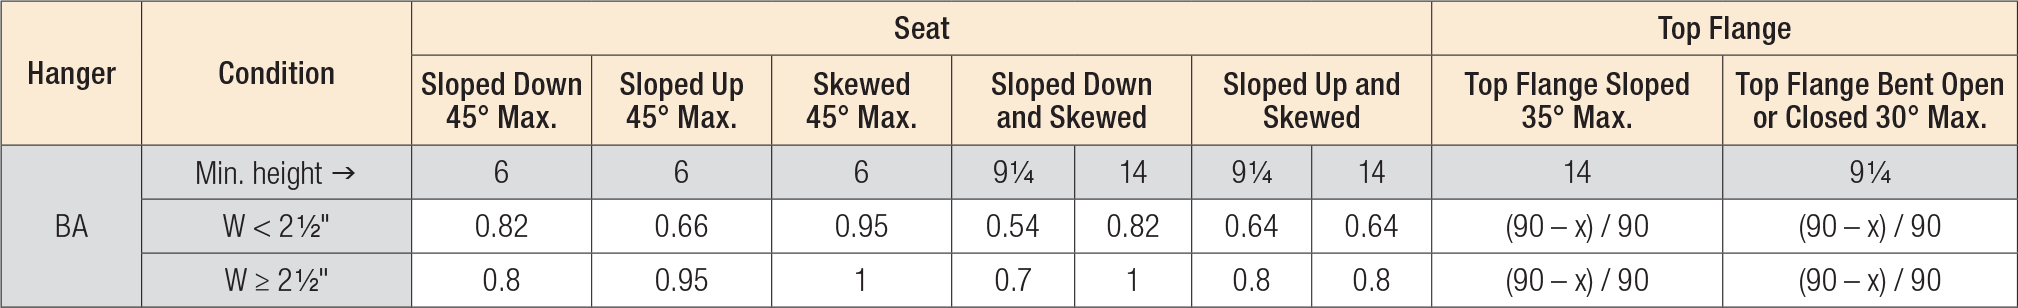 BA Modifications and Associated Load Reductions